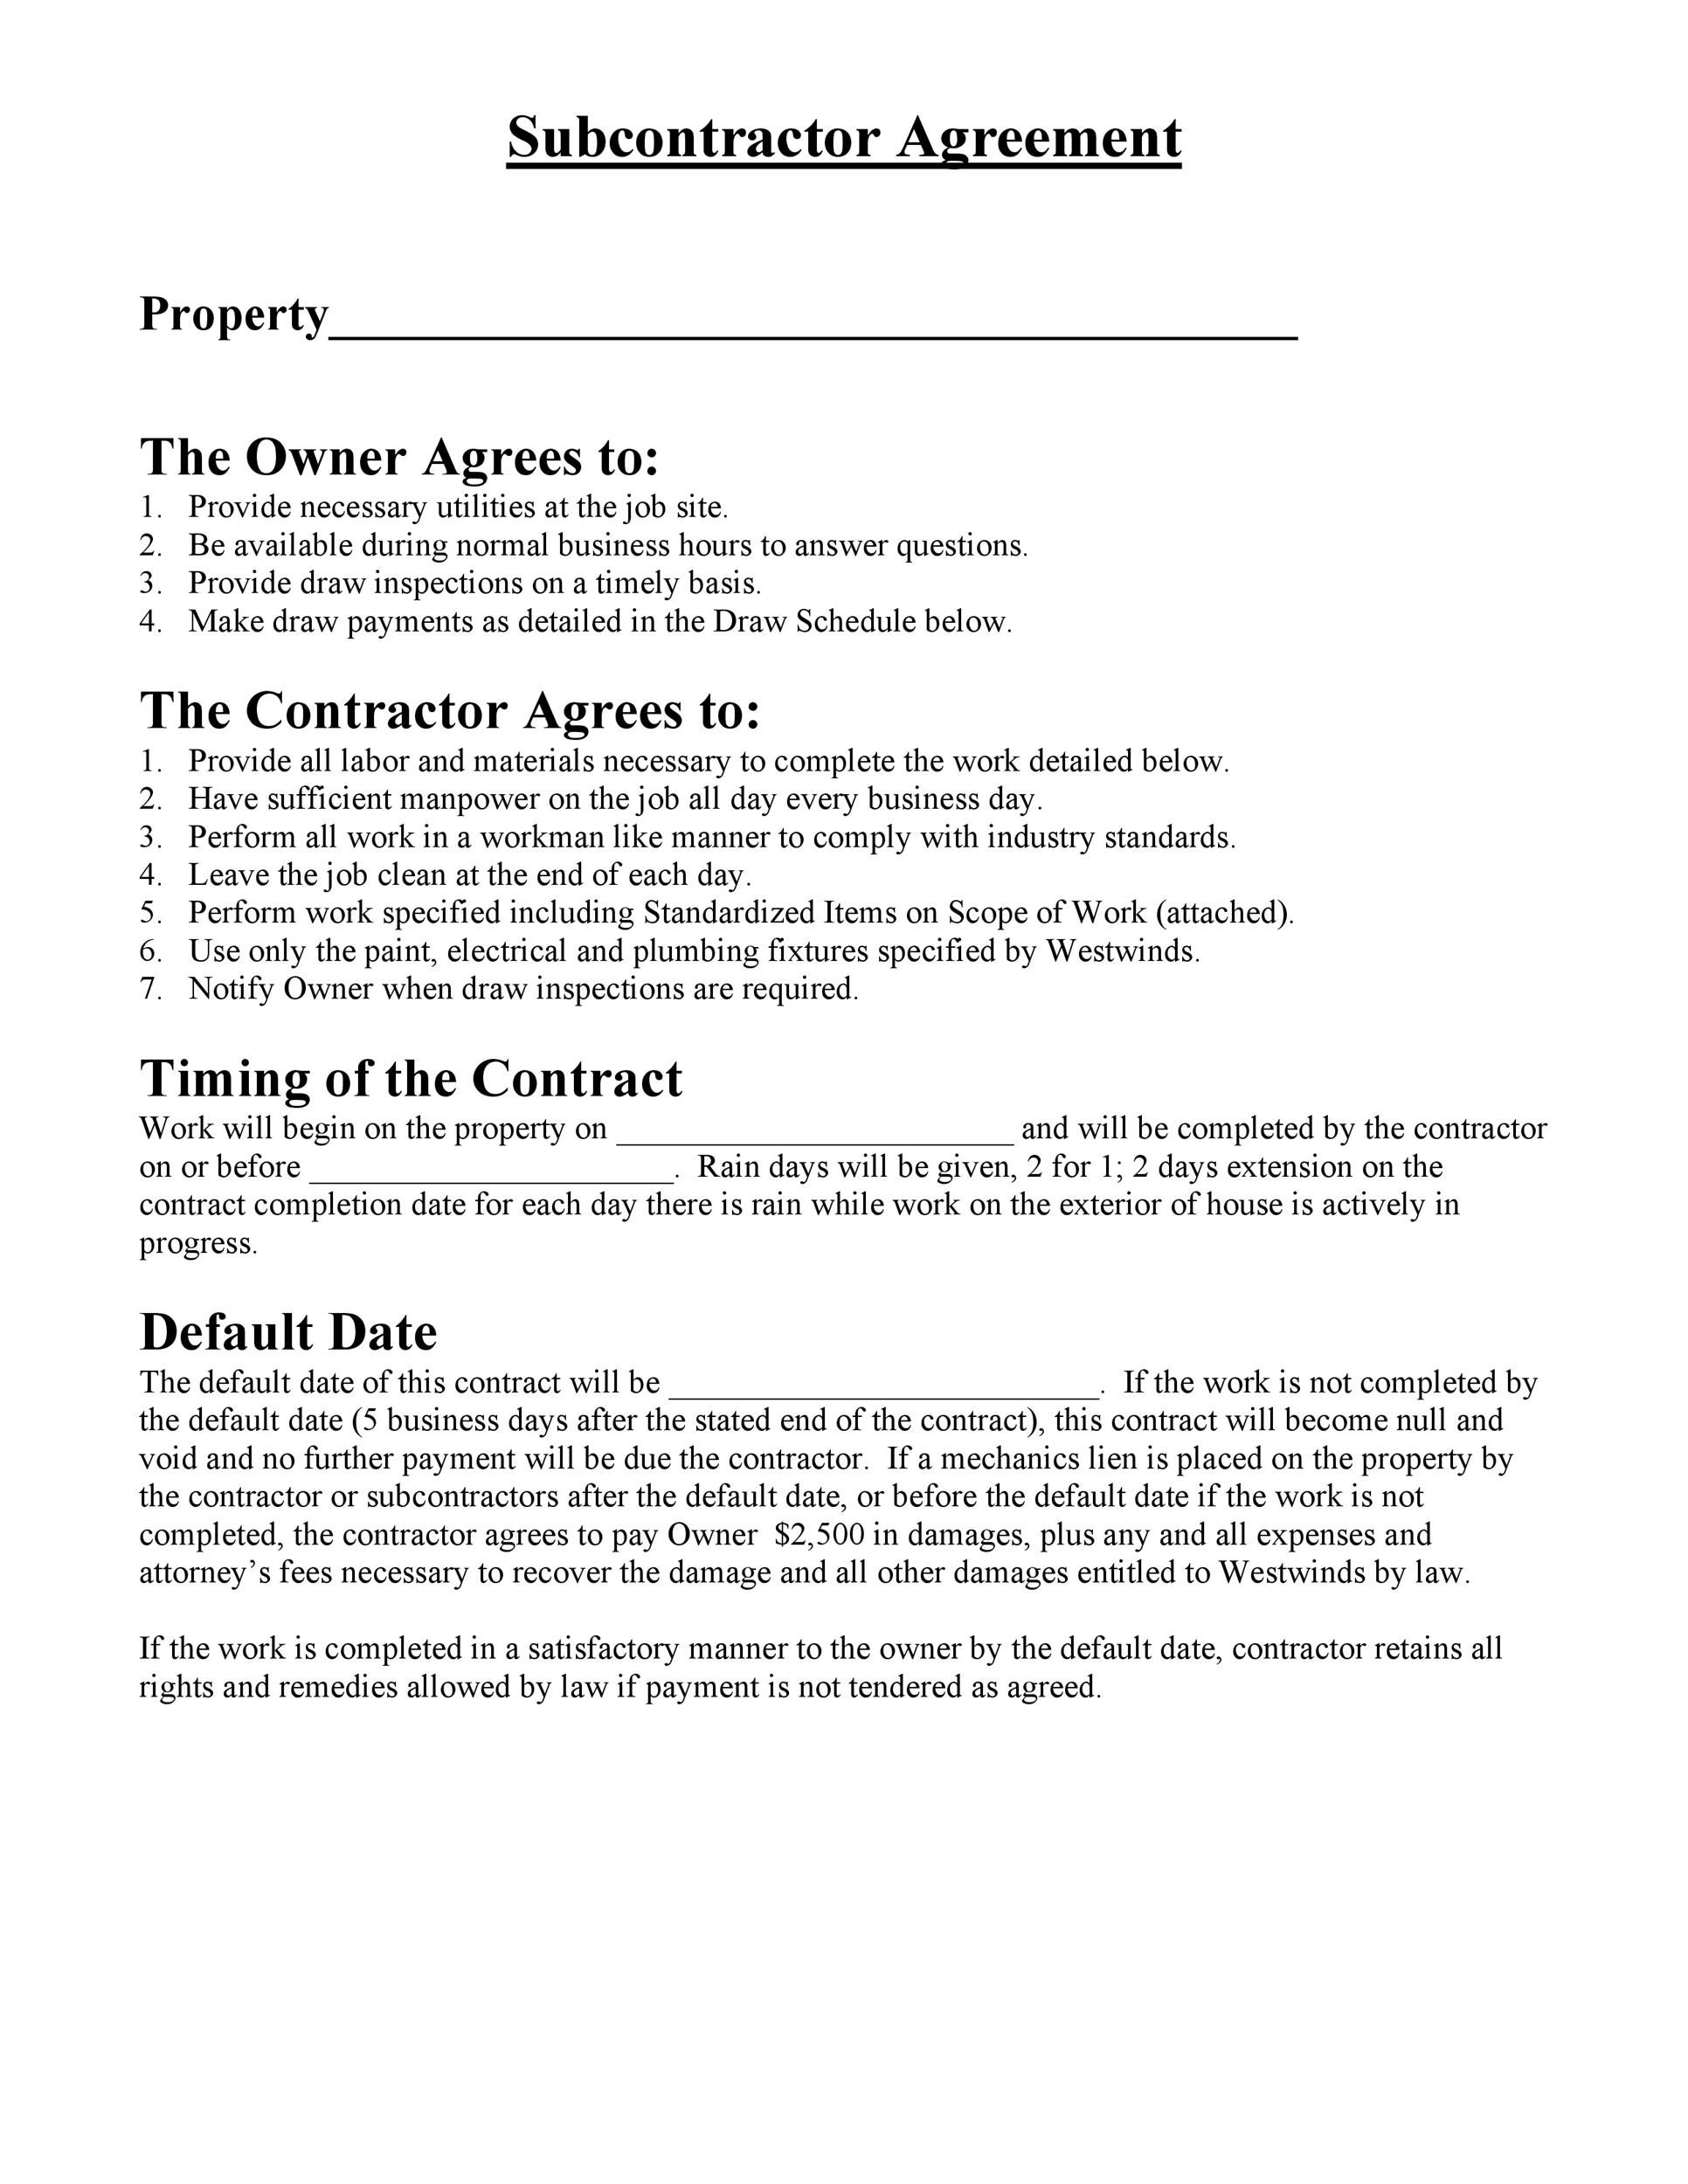 Need a Subcontractor Agreement? 39 Free Templates HERE - subcontractor agreement template